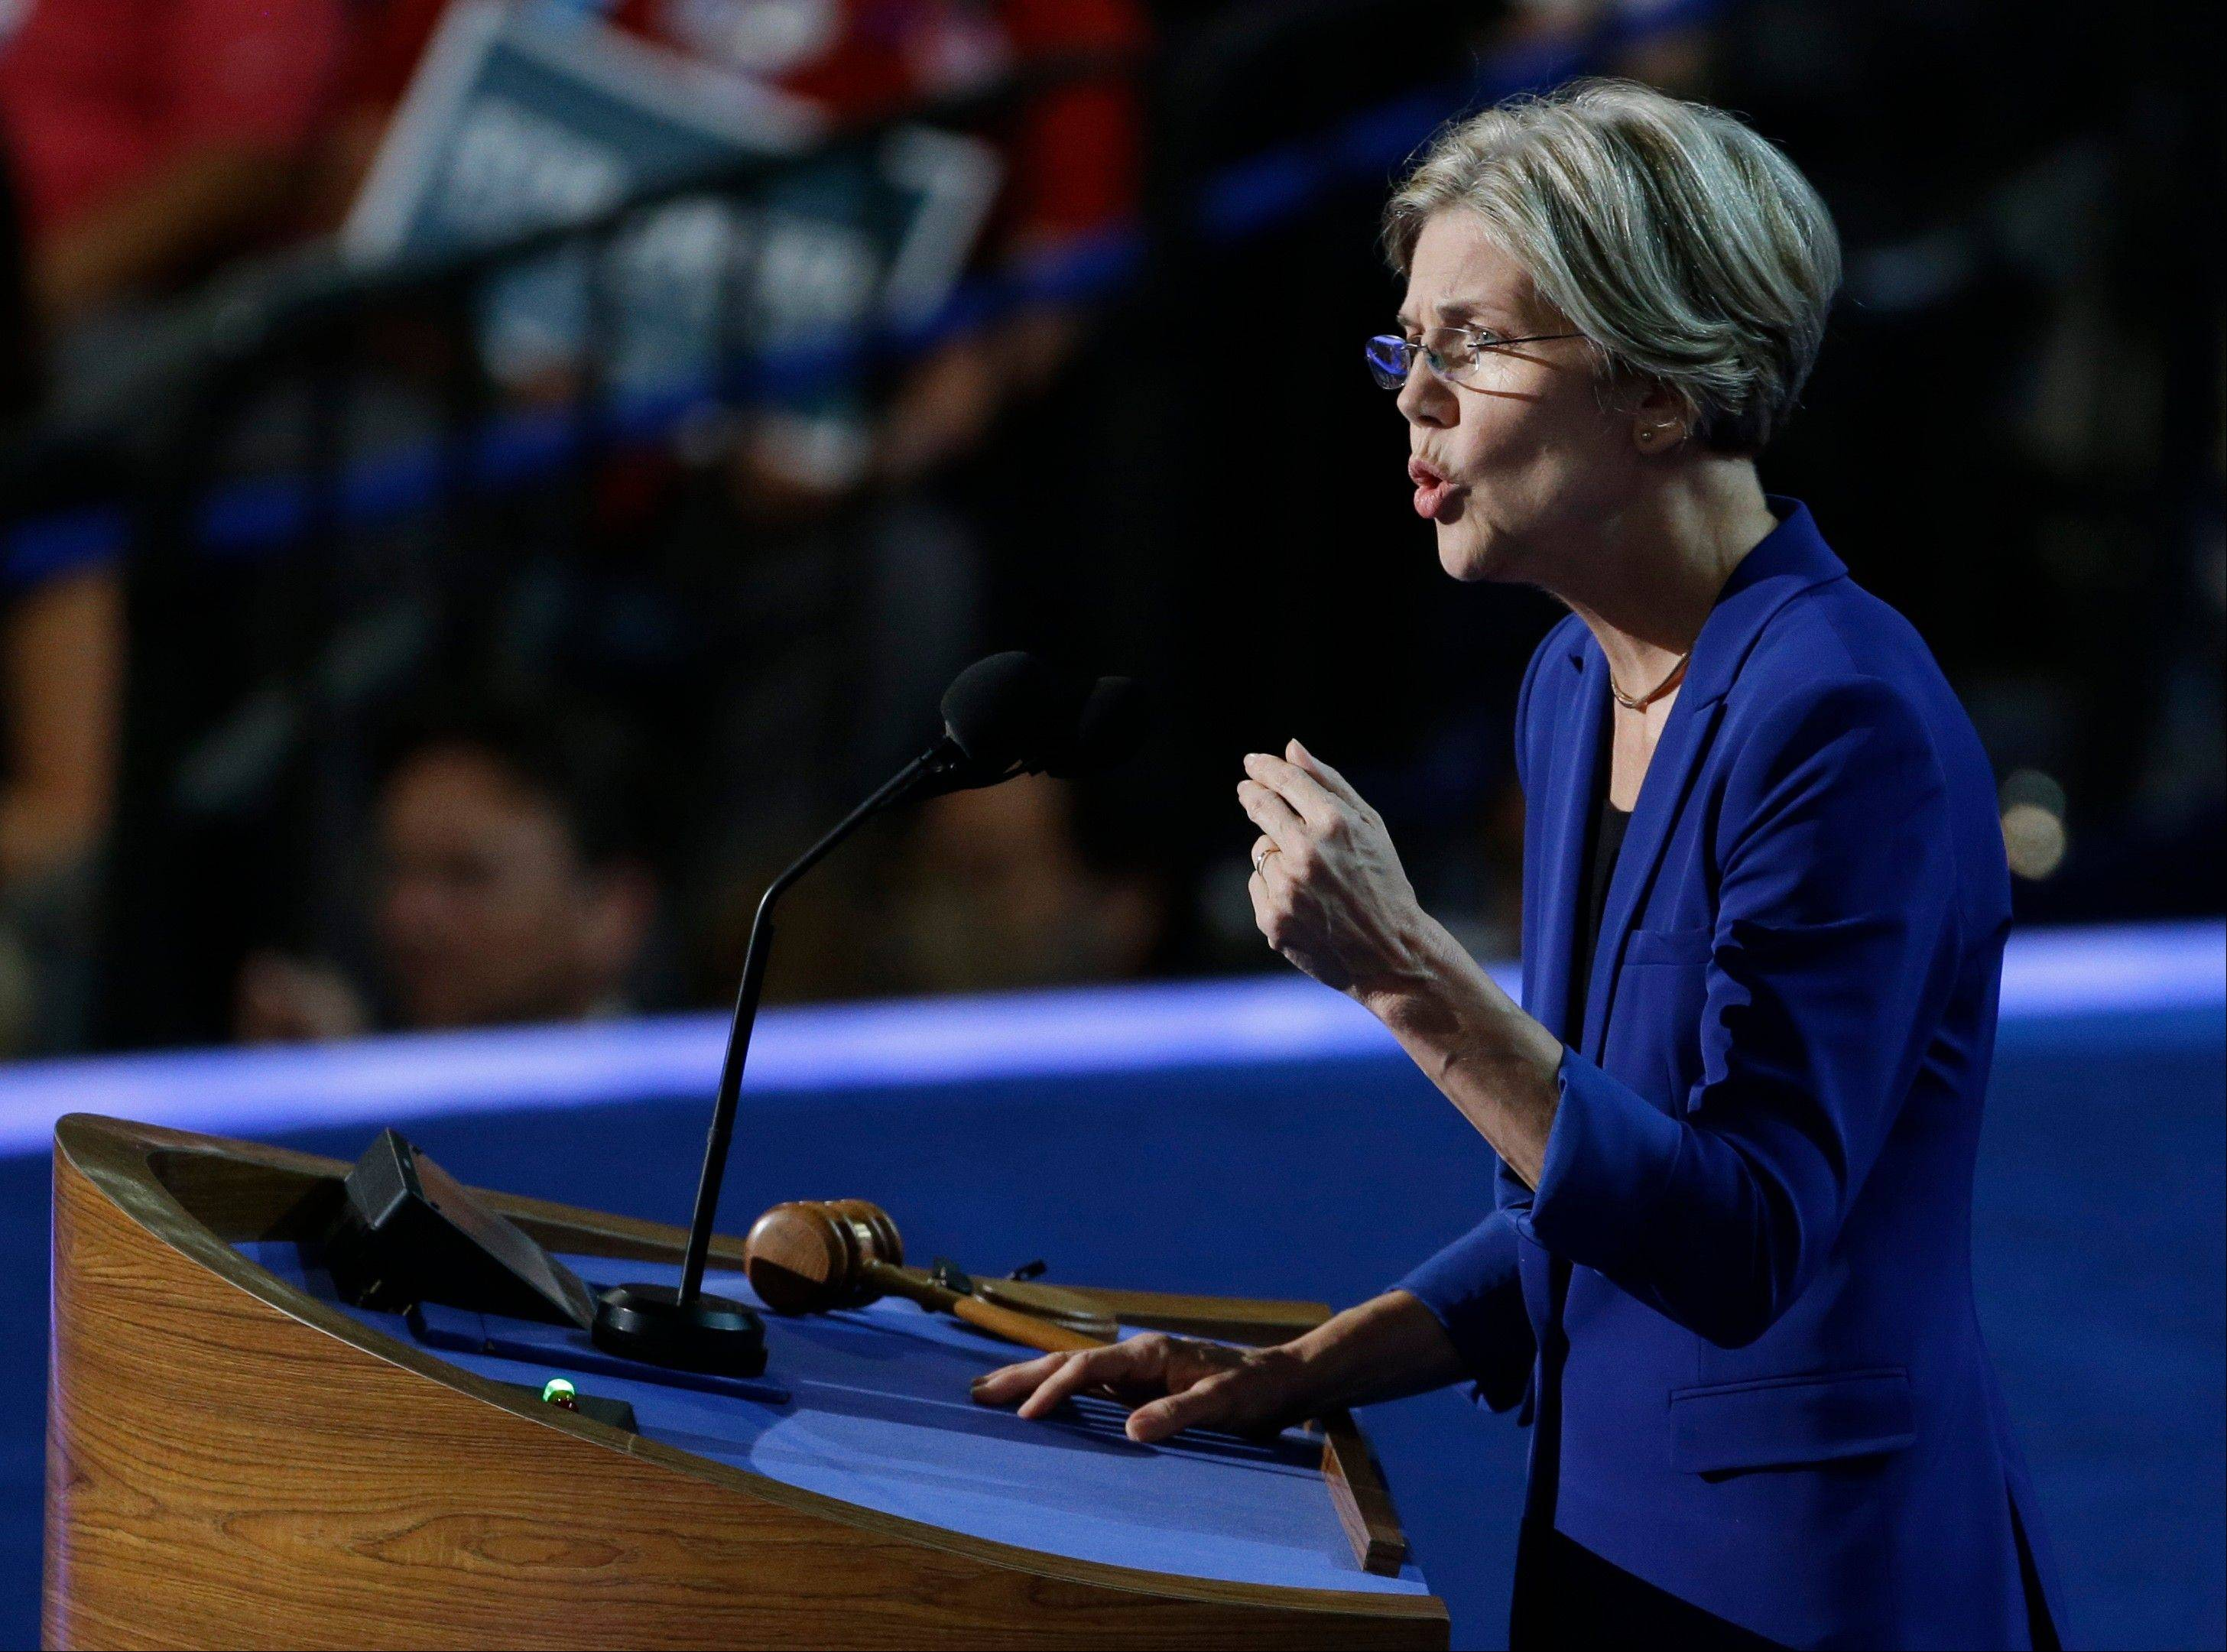 Massachusetts Senate candidate Elizabeth Warren speaks to delegates at the Democratic National Convention in Charlotte, N.C., on Wednesday.